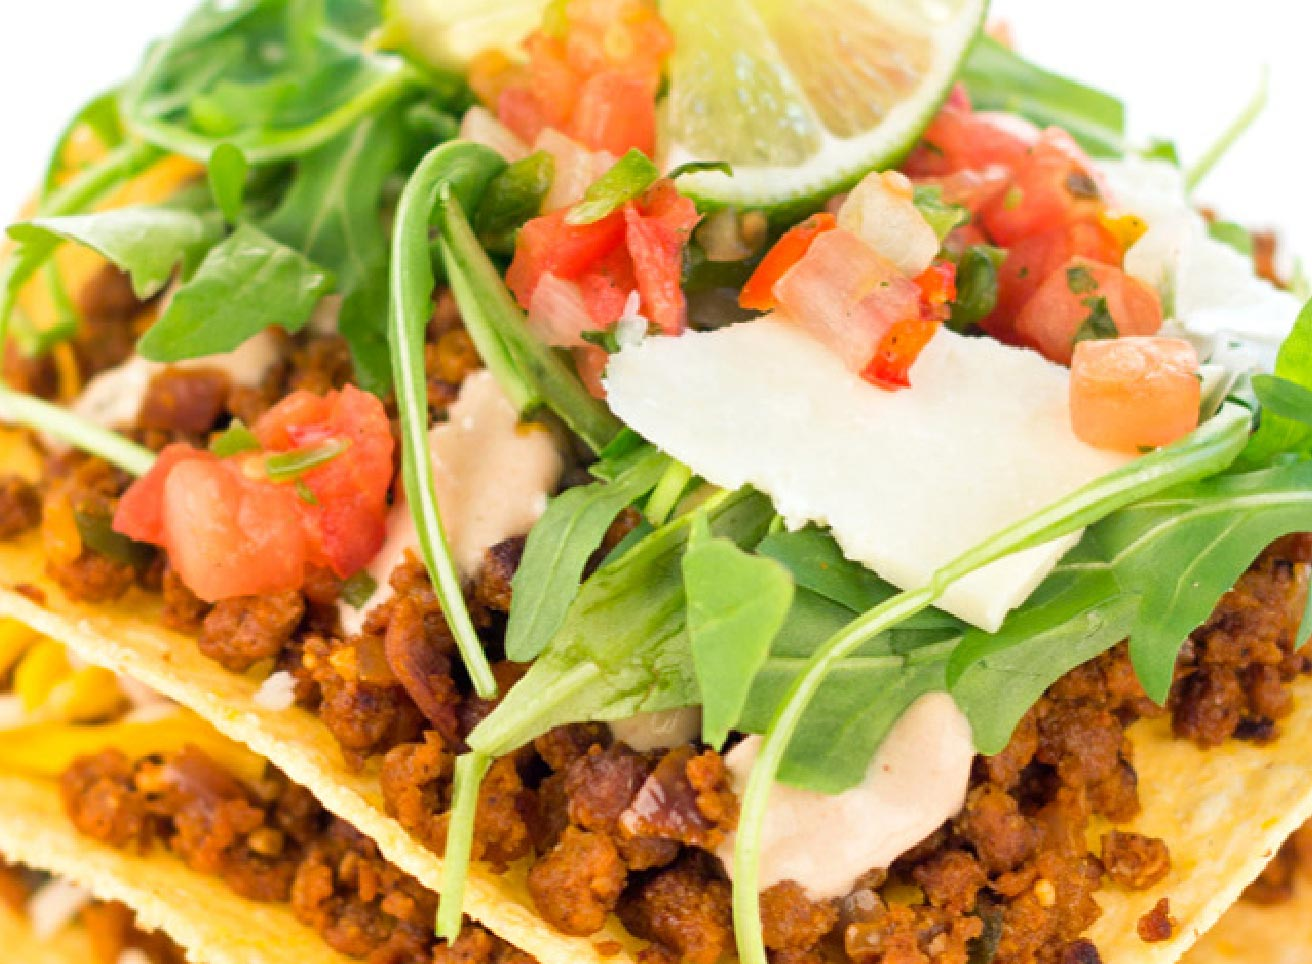 Tostada with Chorizo and Chipotle Salsa